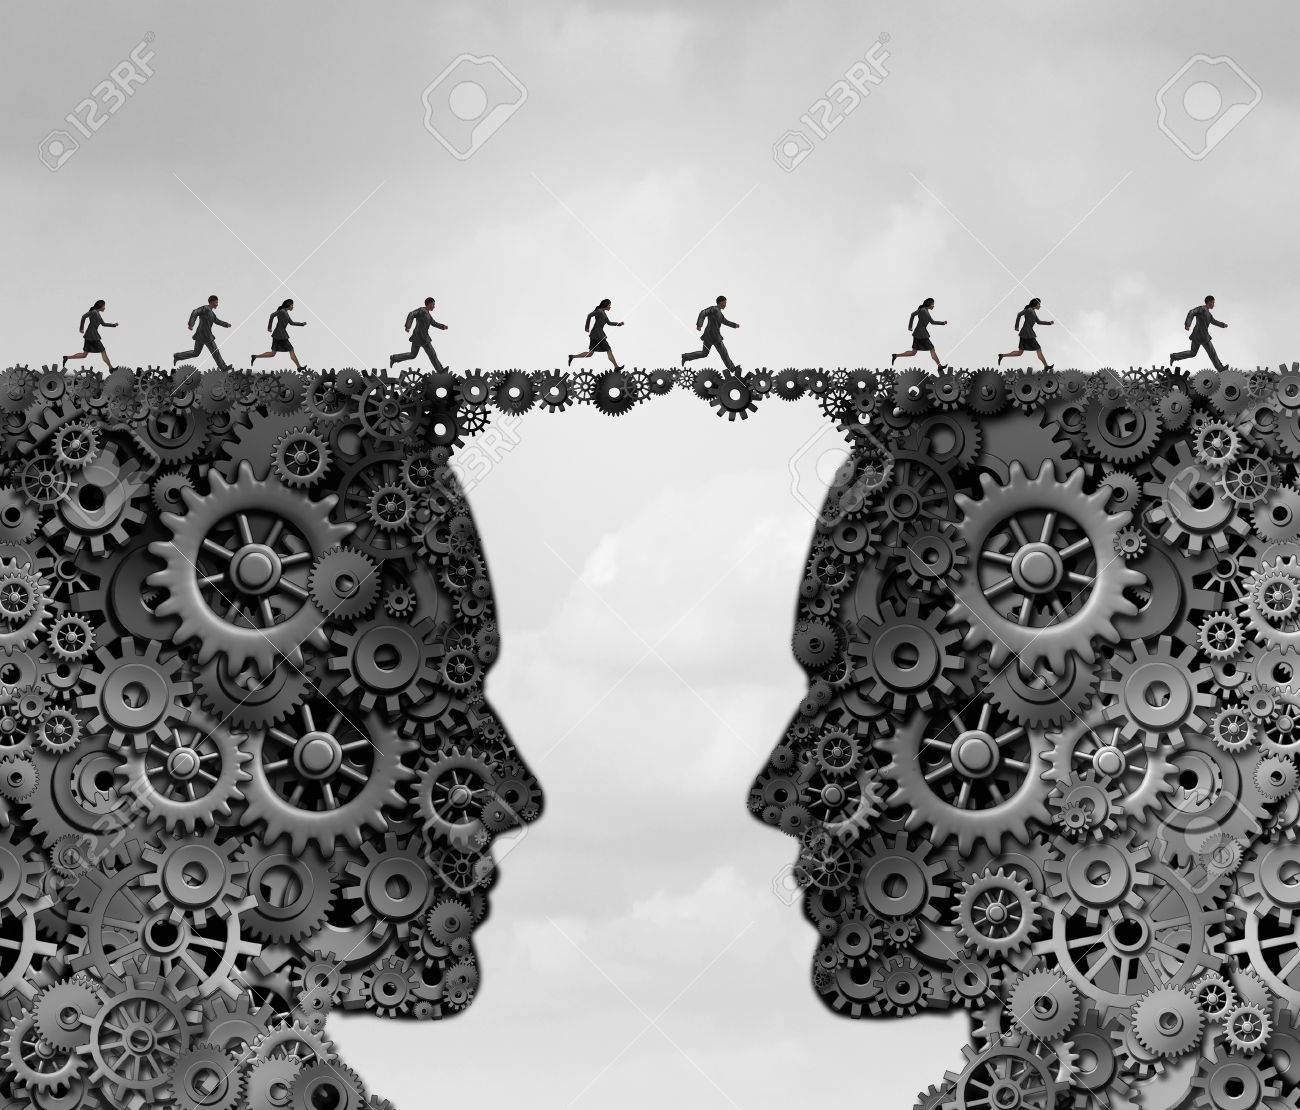 Business industry bridge as a group of people running across a link made of gears and cogwheels shaped as a head as a success metaphor for technology solutions with 3D illustration elements. - 60168782